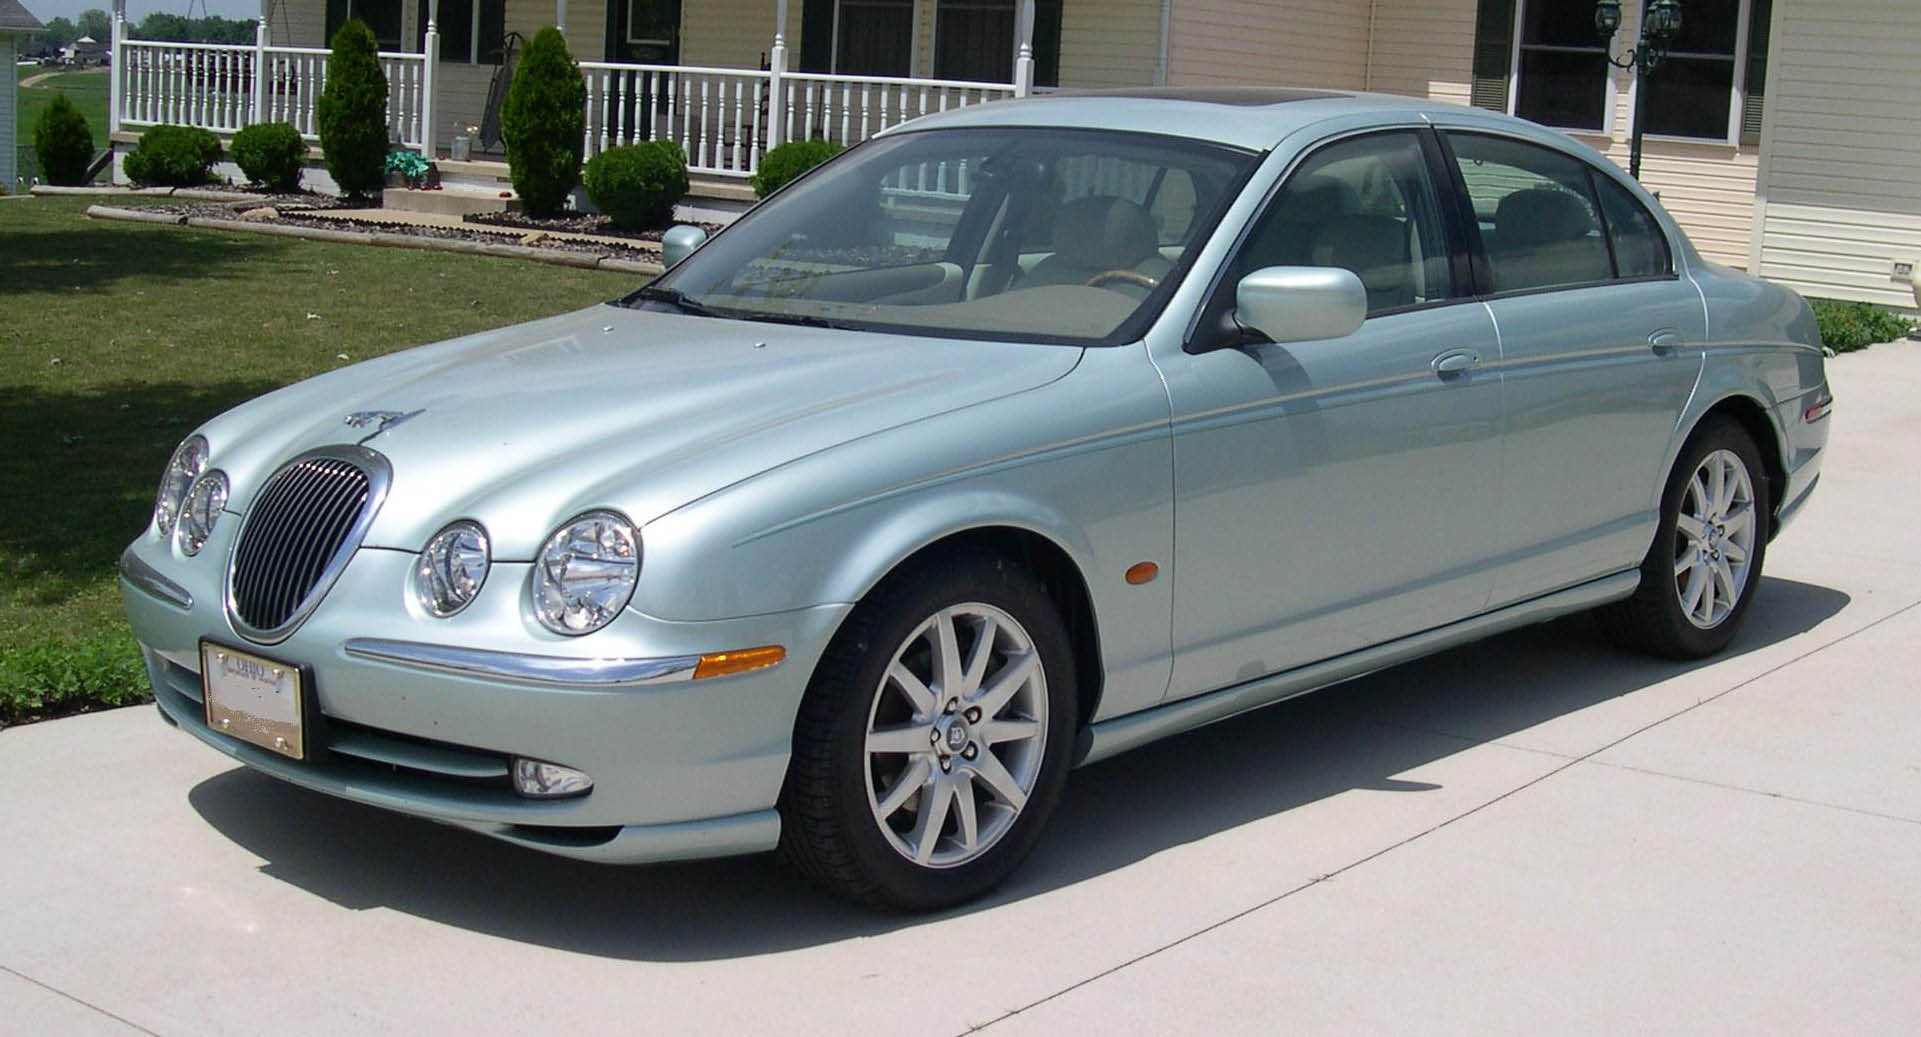 Jaguar s-type photo - 7